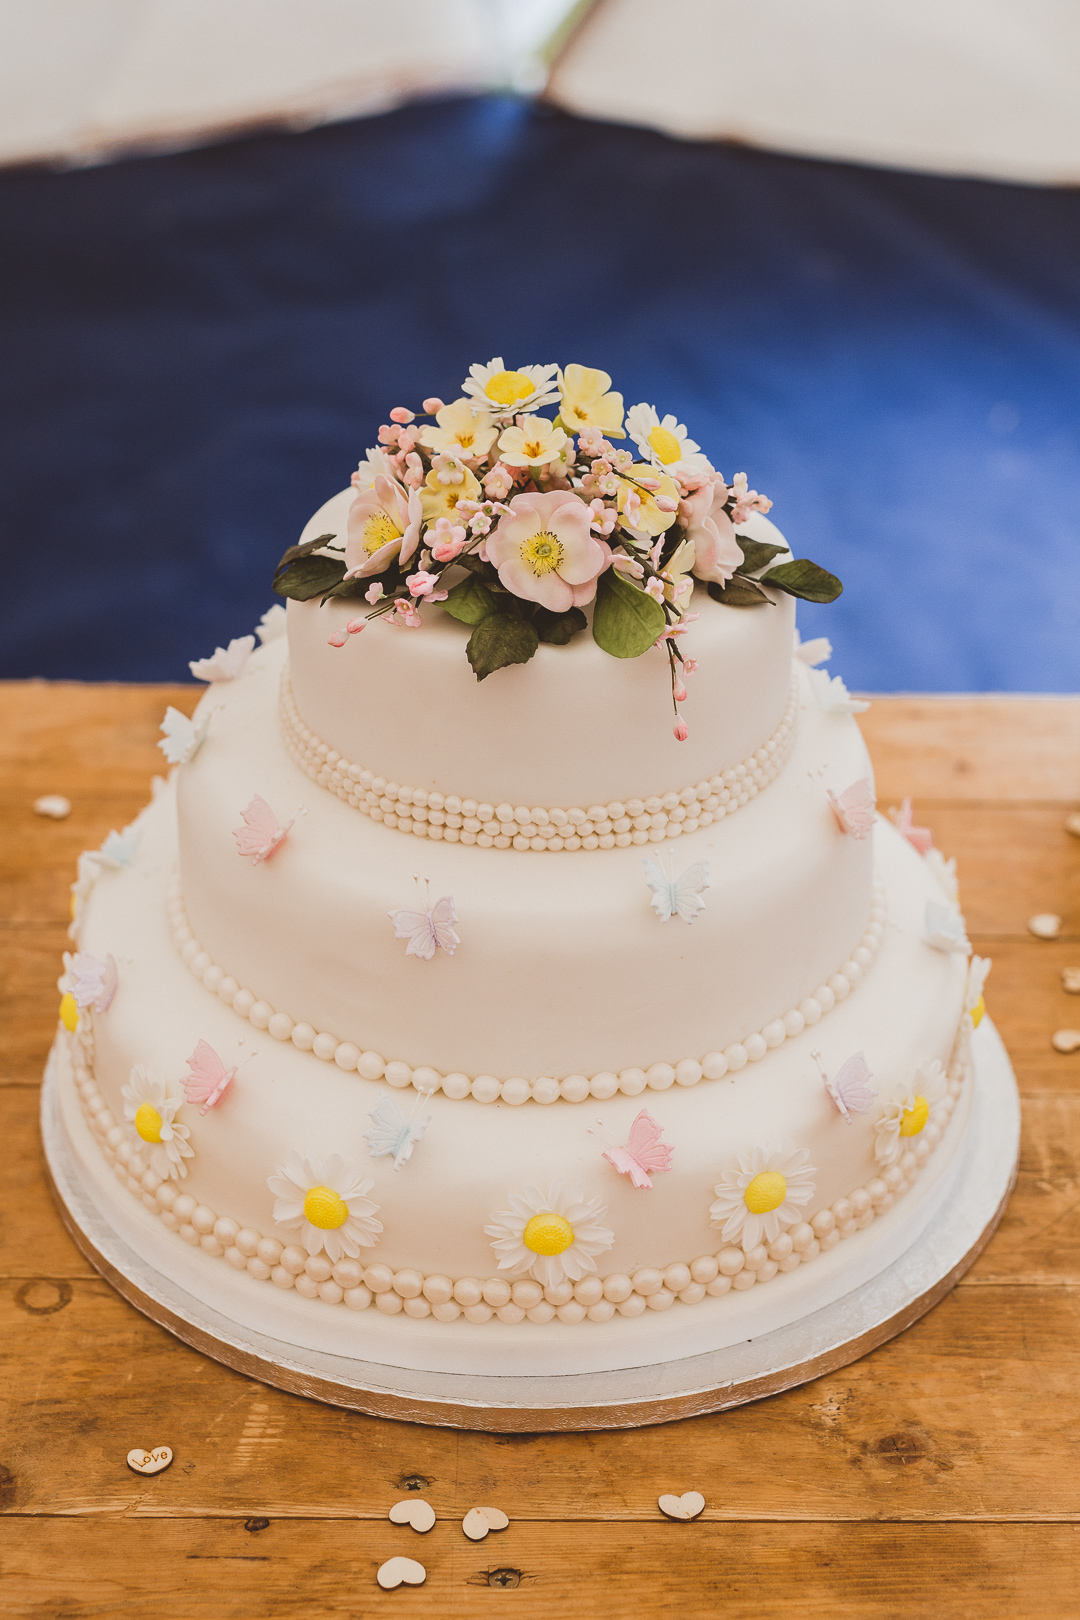 tiered-wedding-cake-jen-and-mat's-festival-wedding-at-Scraptoft farm